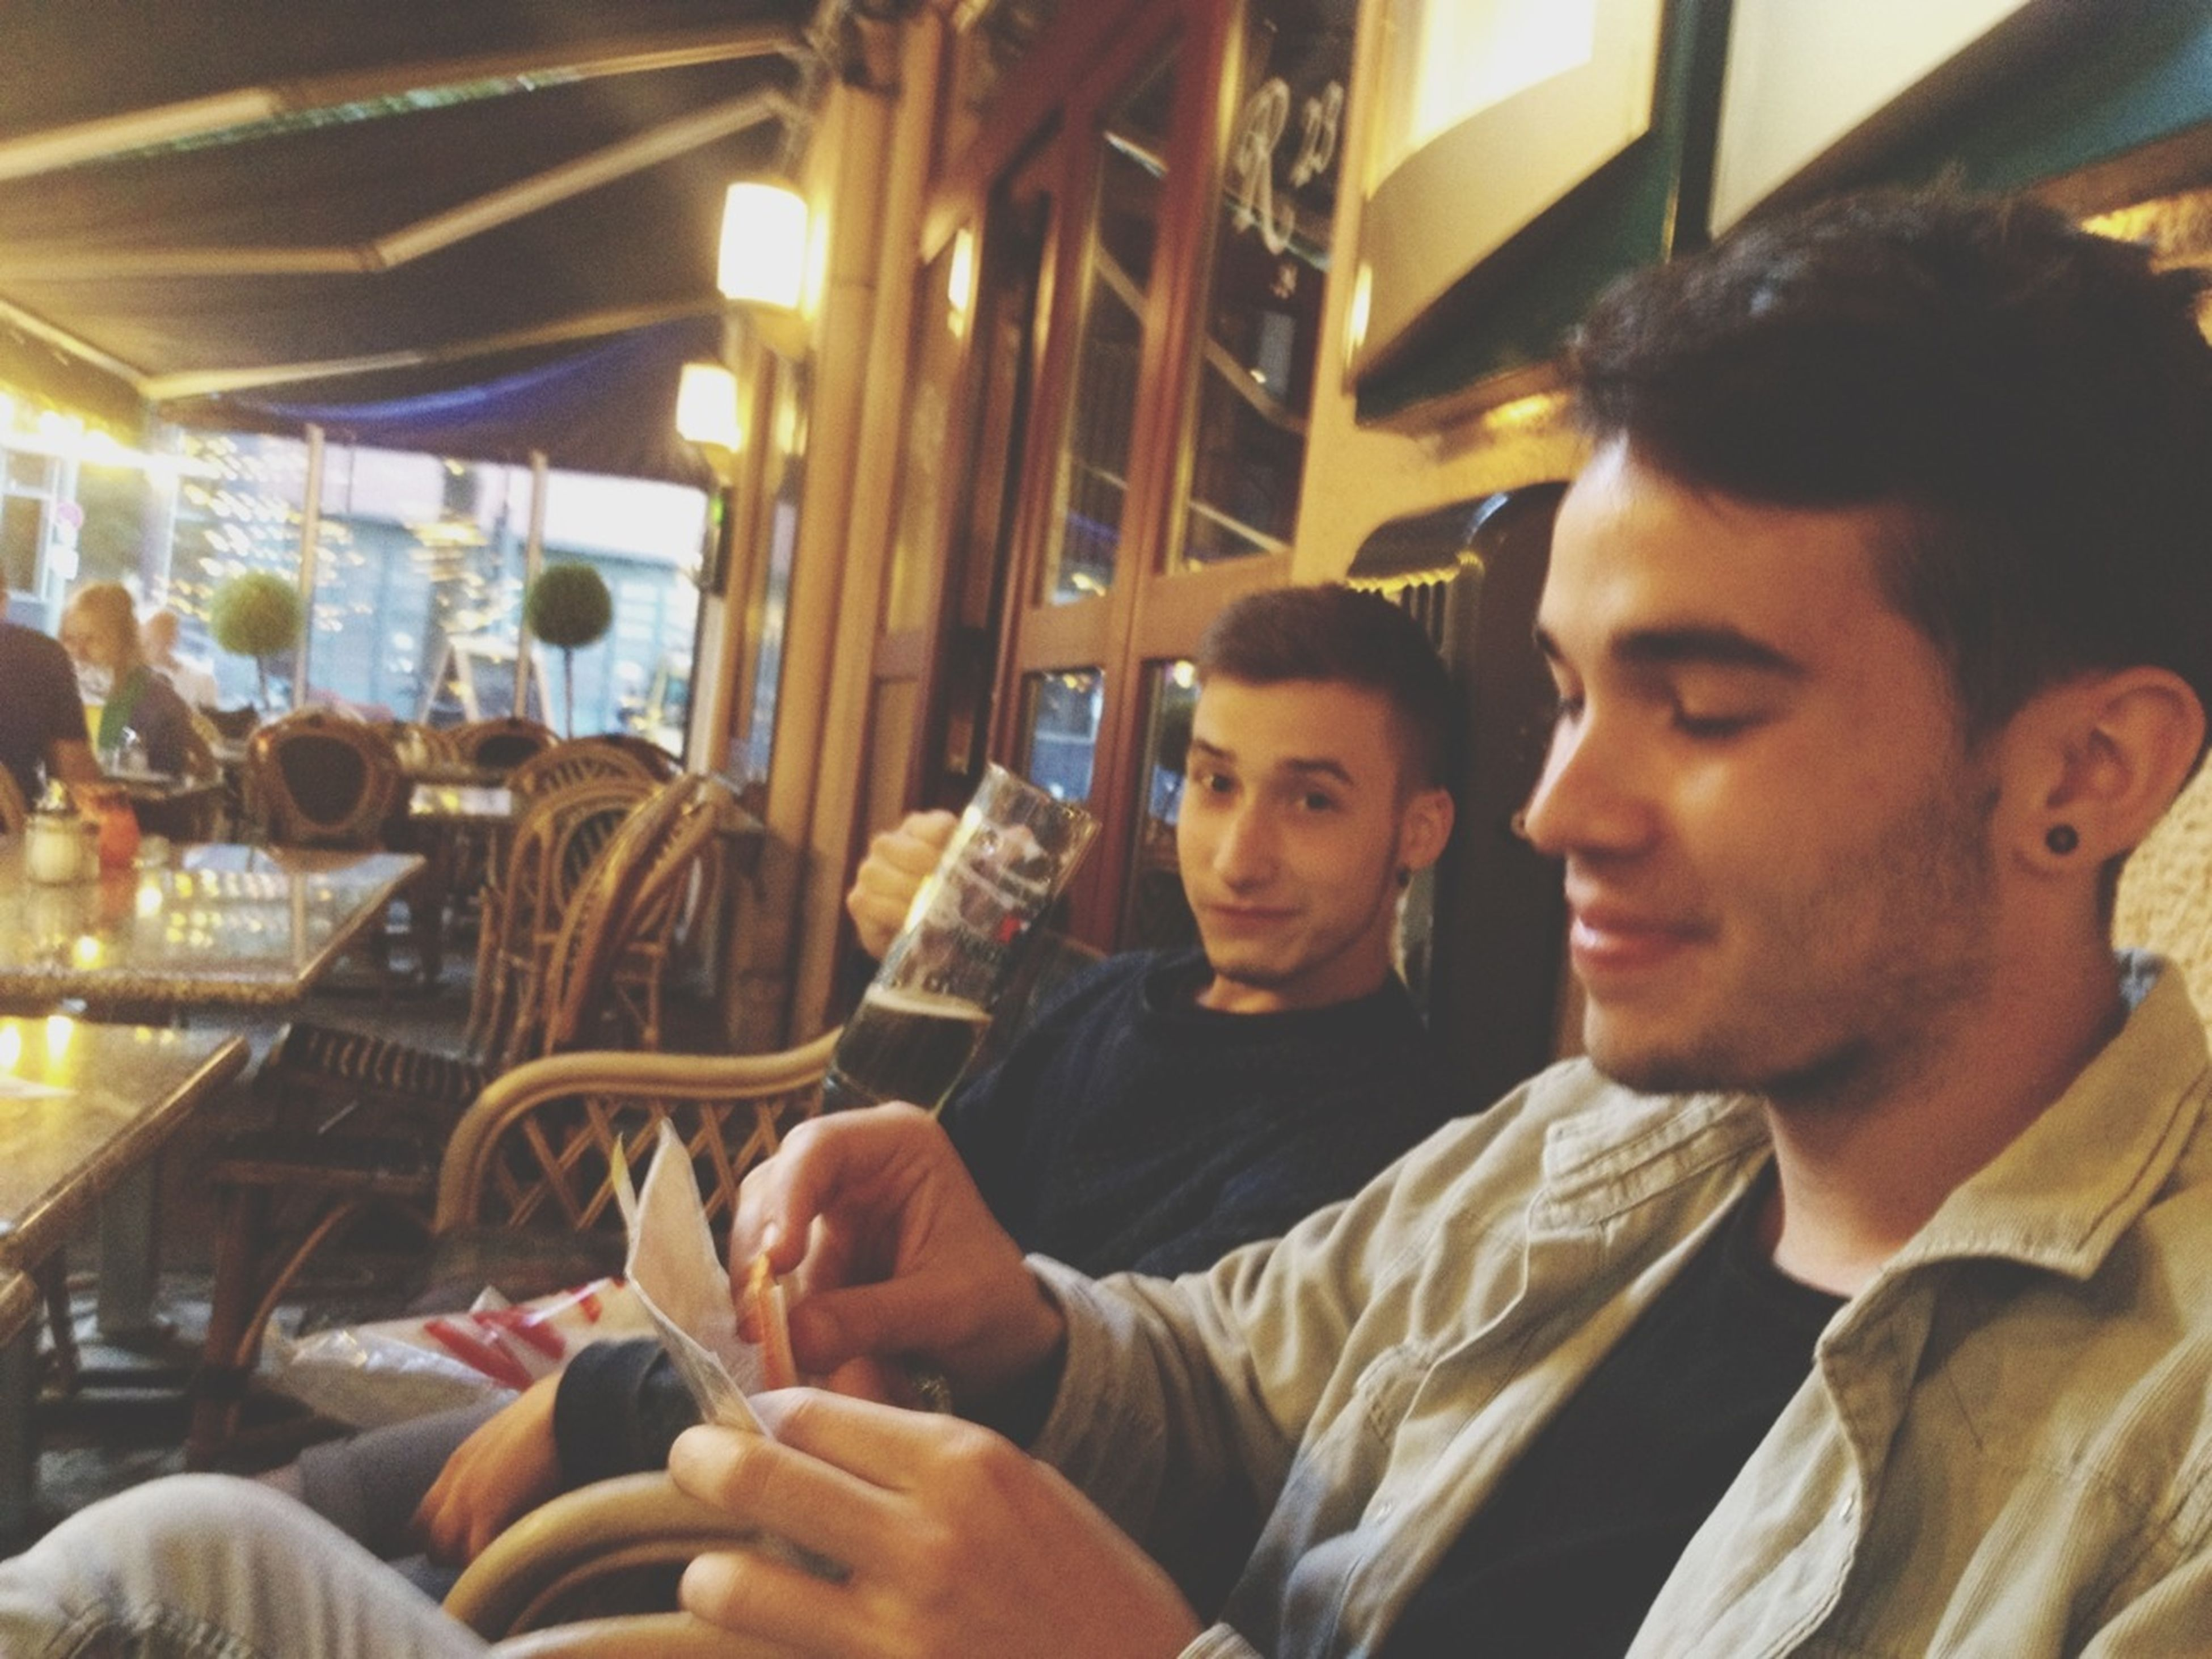 indoors, lifestyles, person, leisure activity, young adult, sitting, casual clothing, young men, togetherness, headshot, portrait, restaurant, smiling, looking at camera, wireless technology, waist up